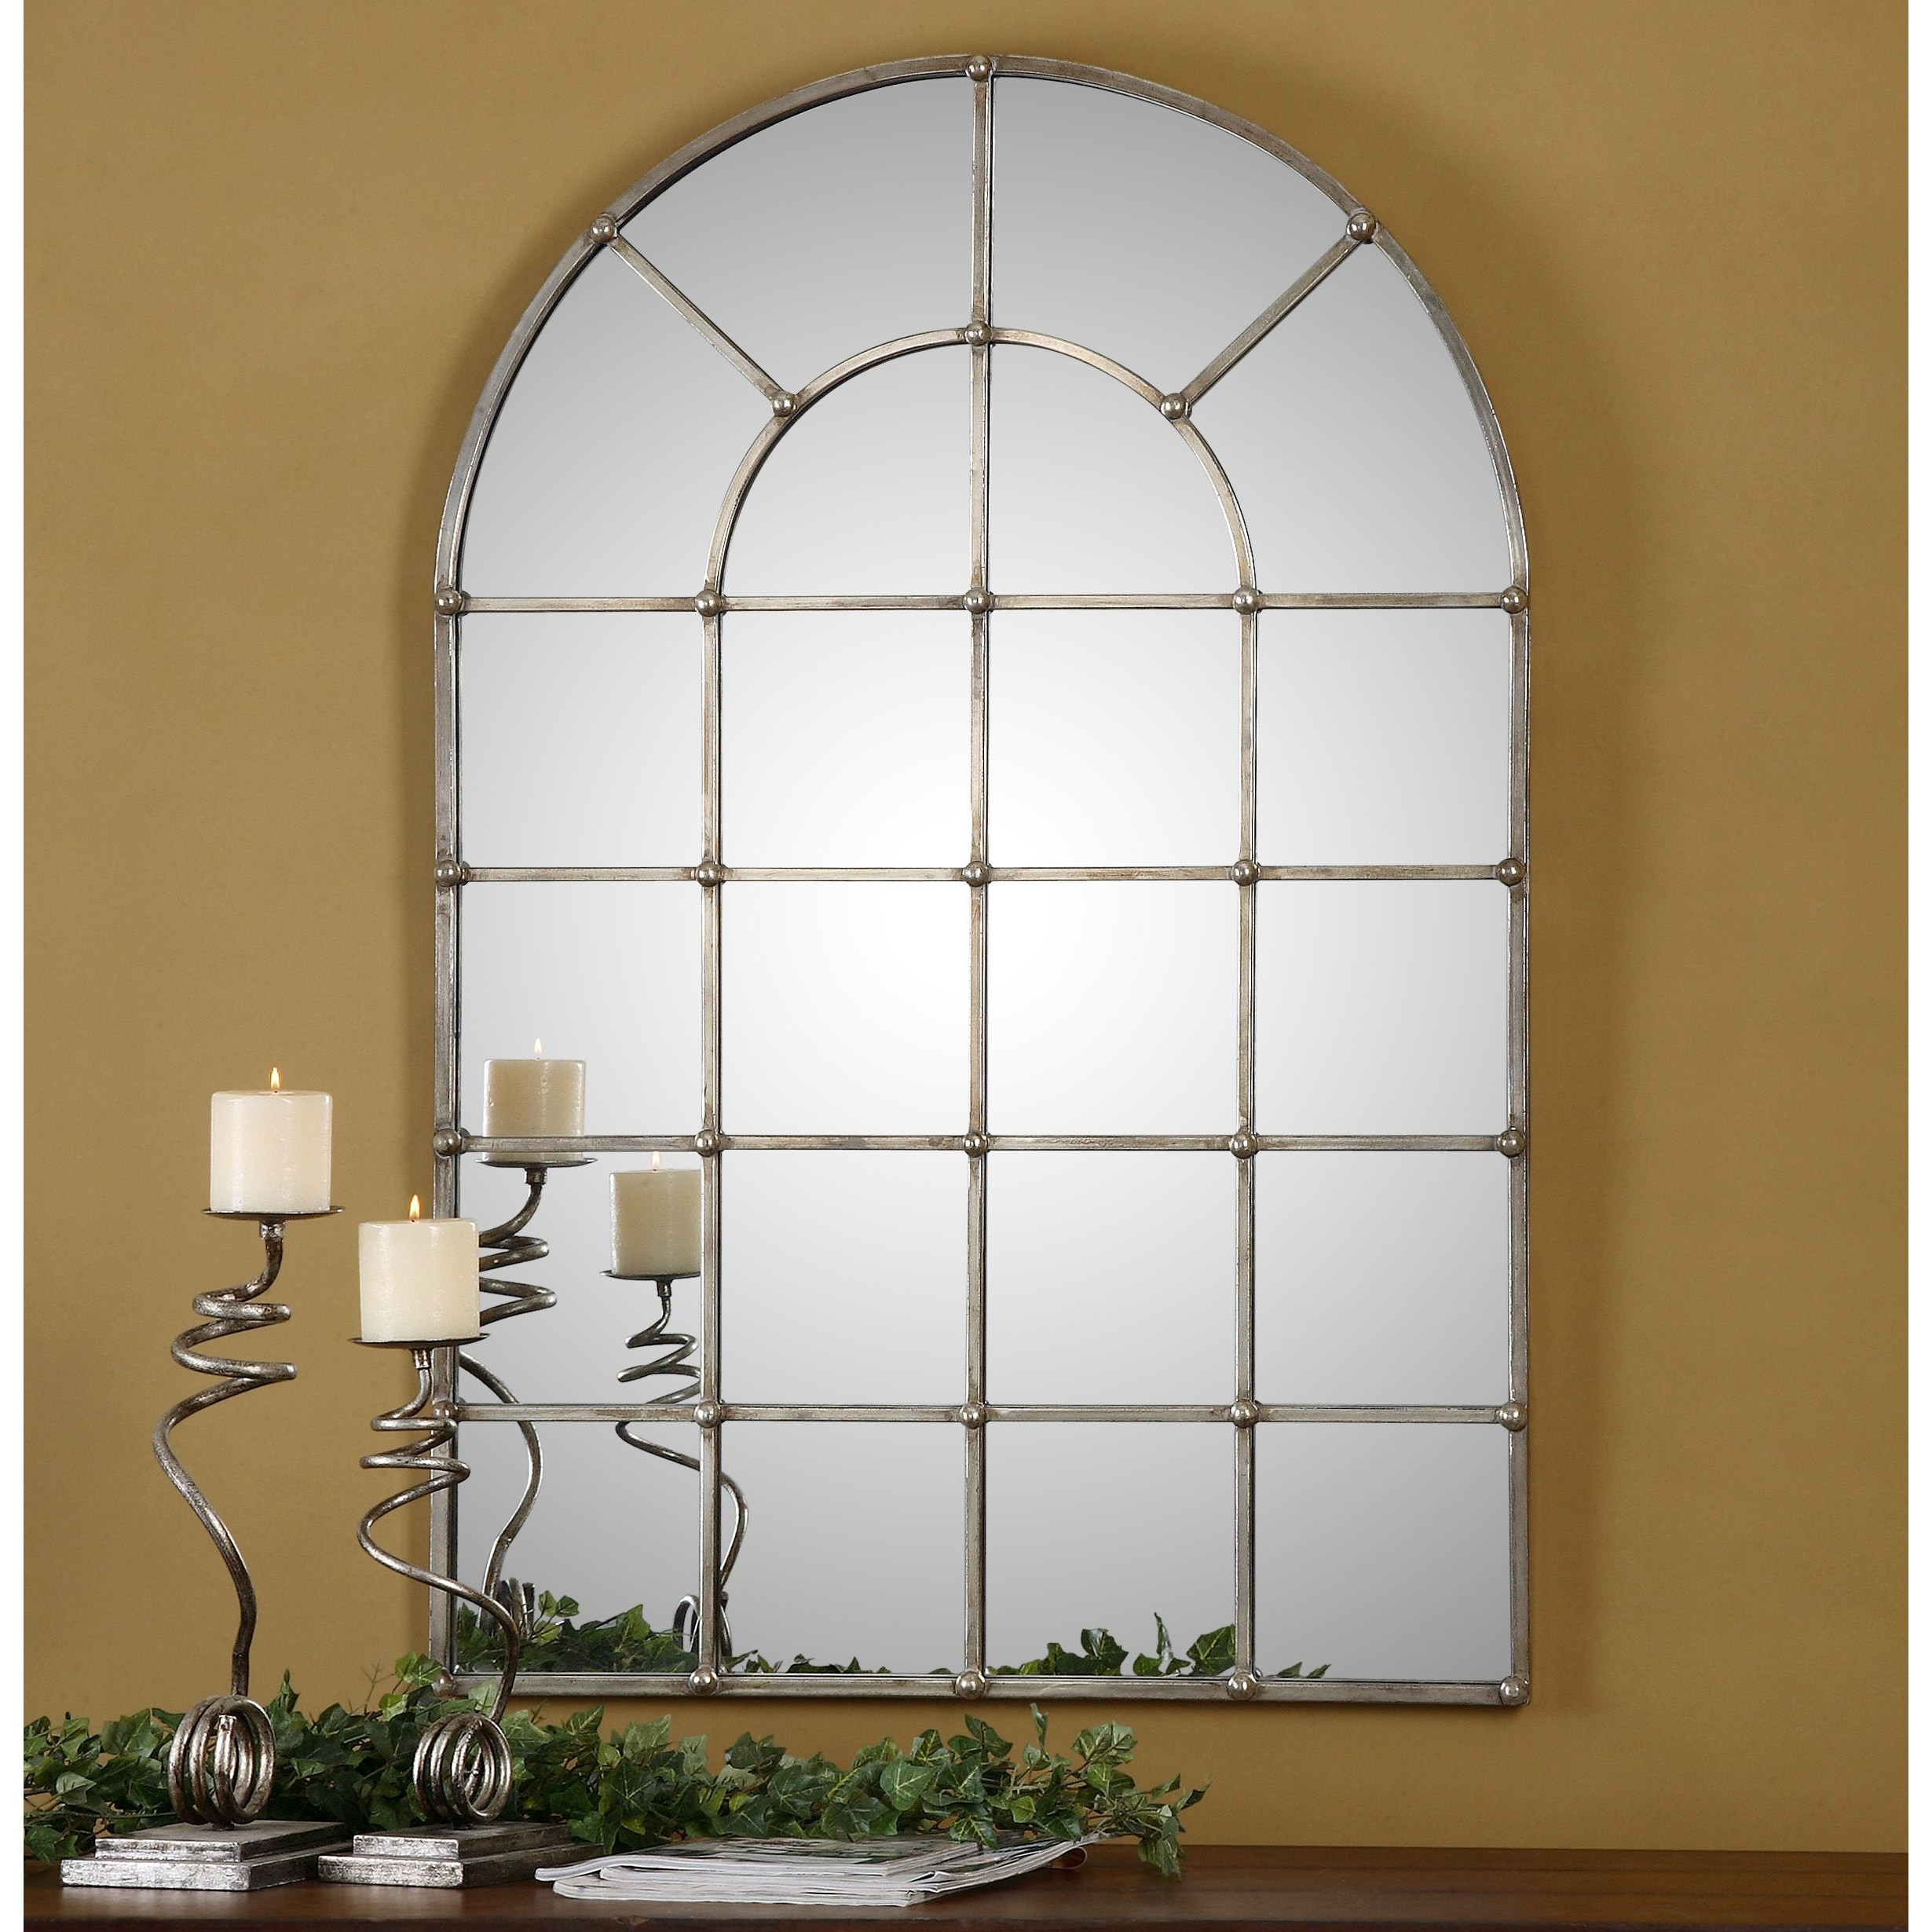 Uttermost Barwell Arch Window Mirror Reviews Wayfair Stacy With Large Arched Mirrors (View 8 of 15)